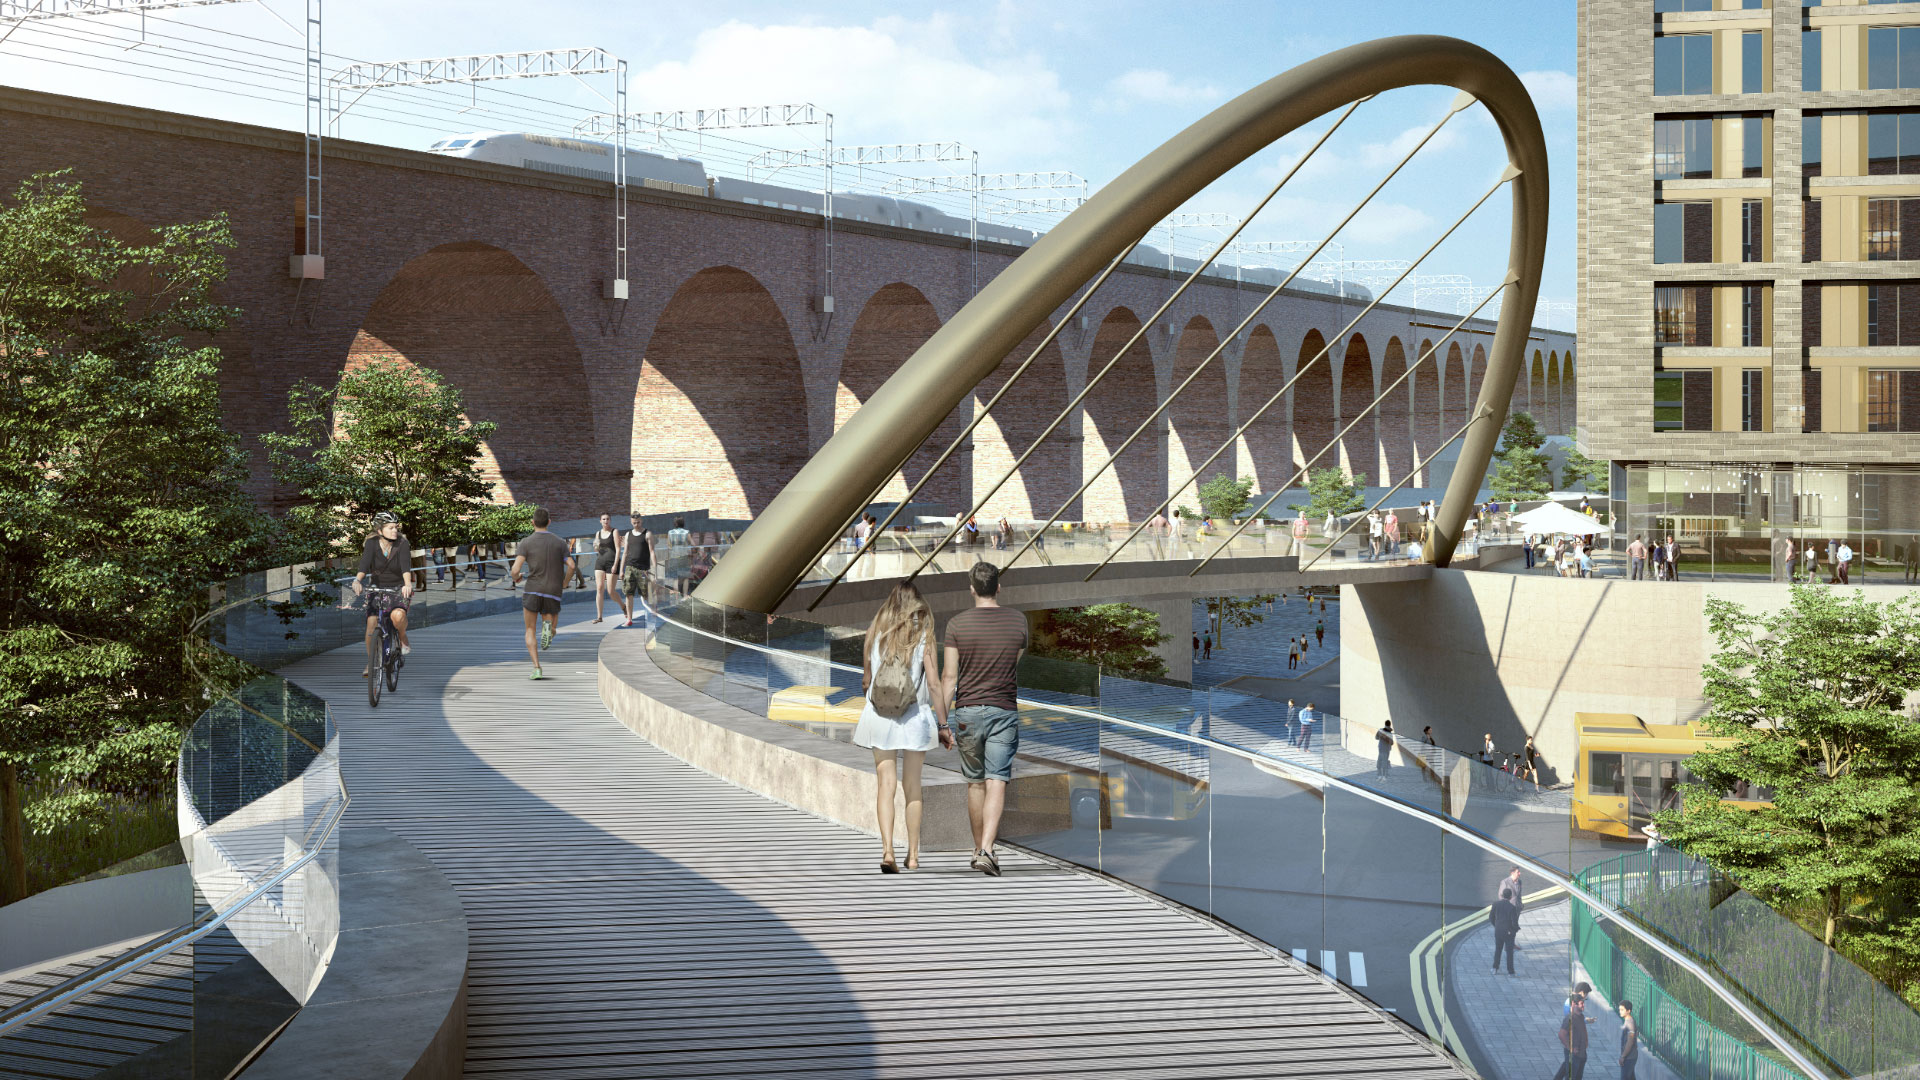 News - Viaduct view of Stockport cycling and walking bridge